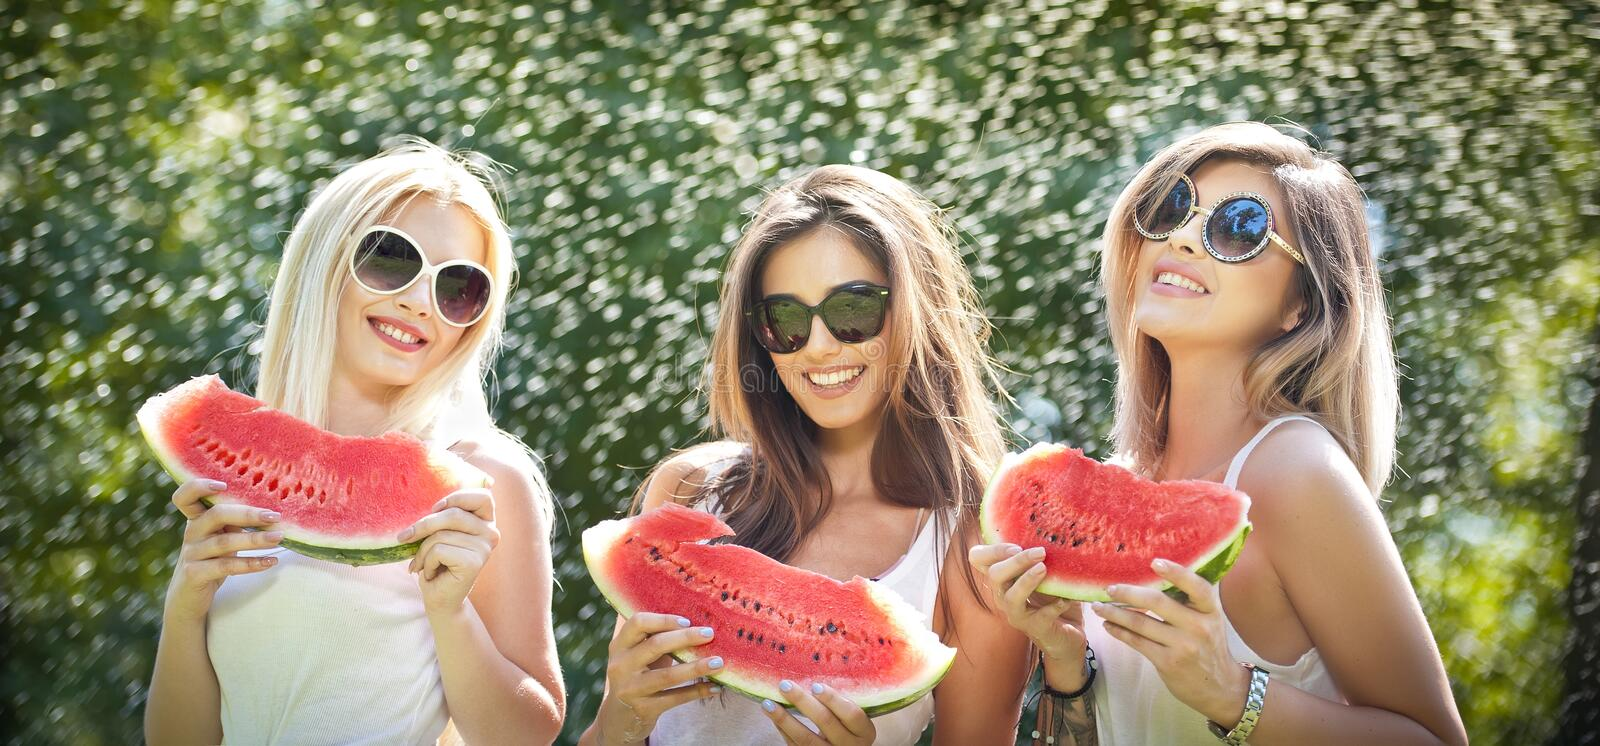 Beautiful girls with sunglasses eating fresh watermelon laughing. Happy young women holding watermelon slices outdoors stock photography